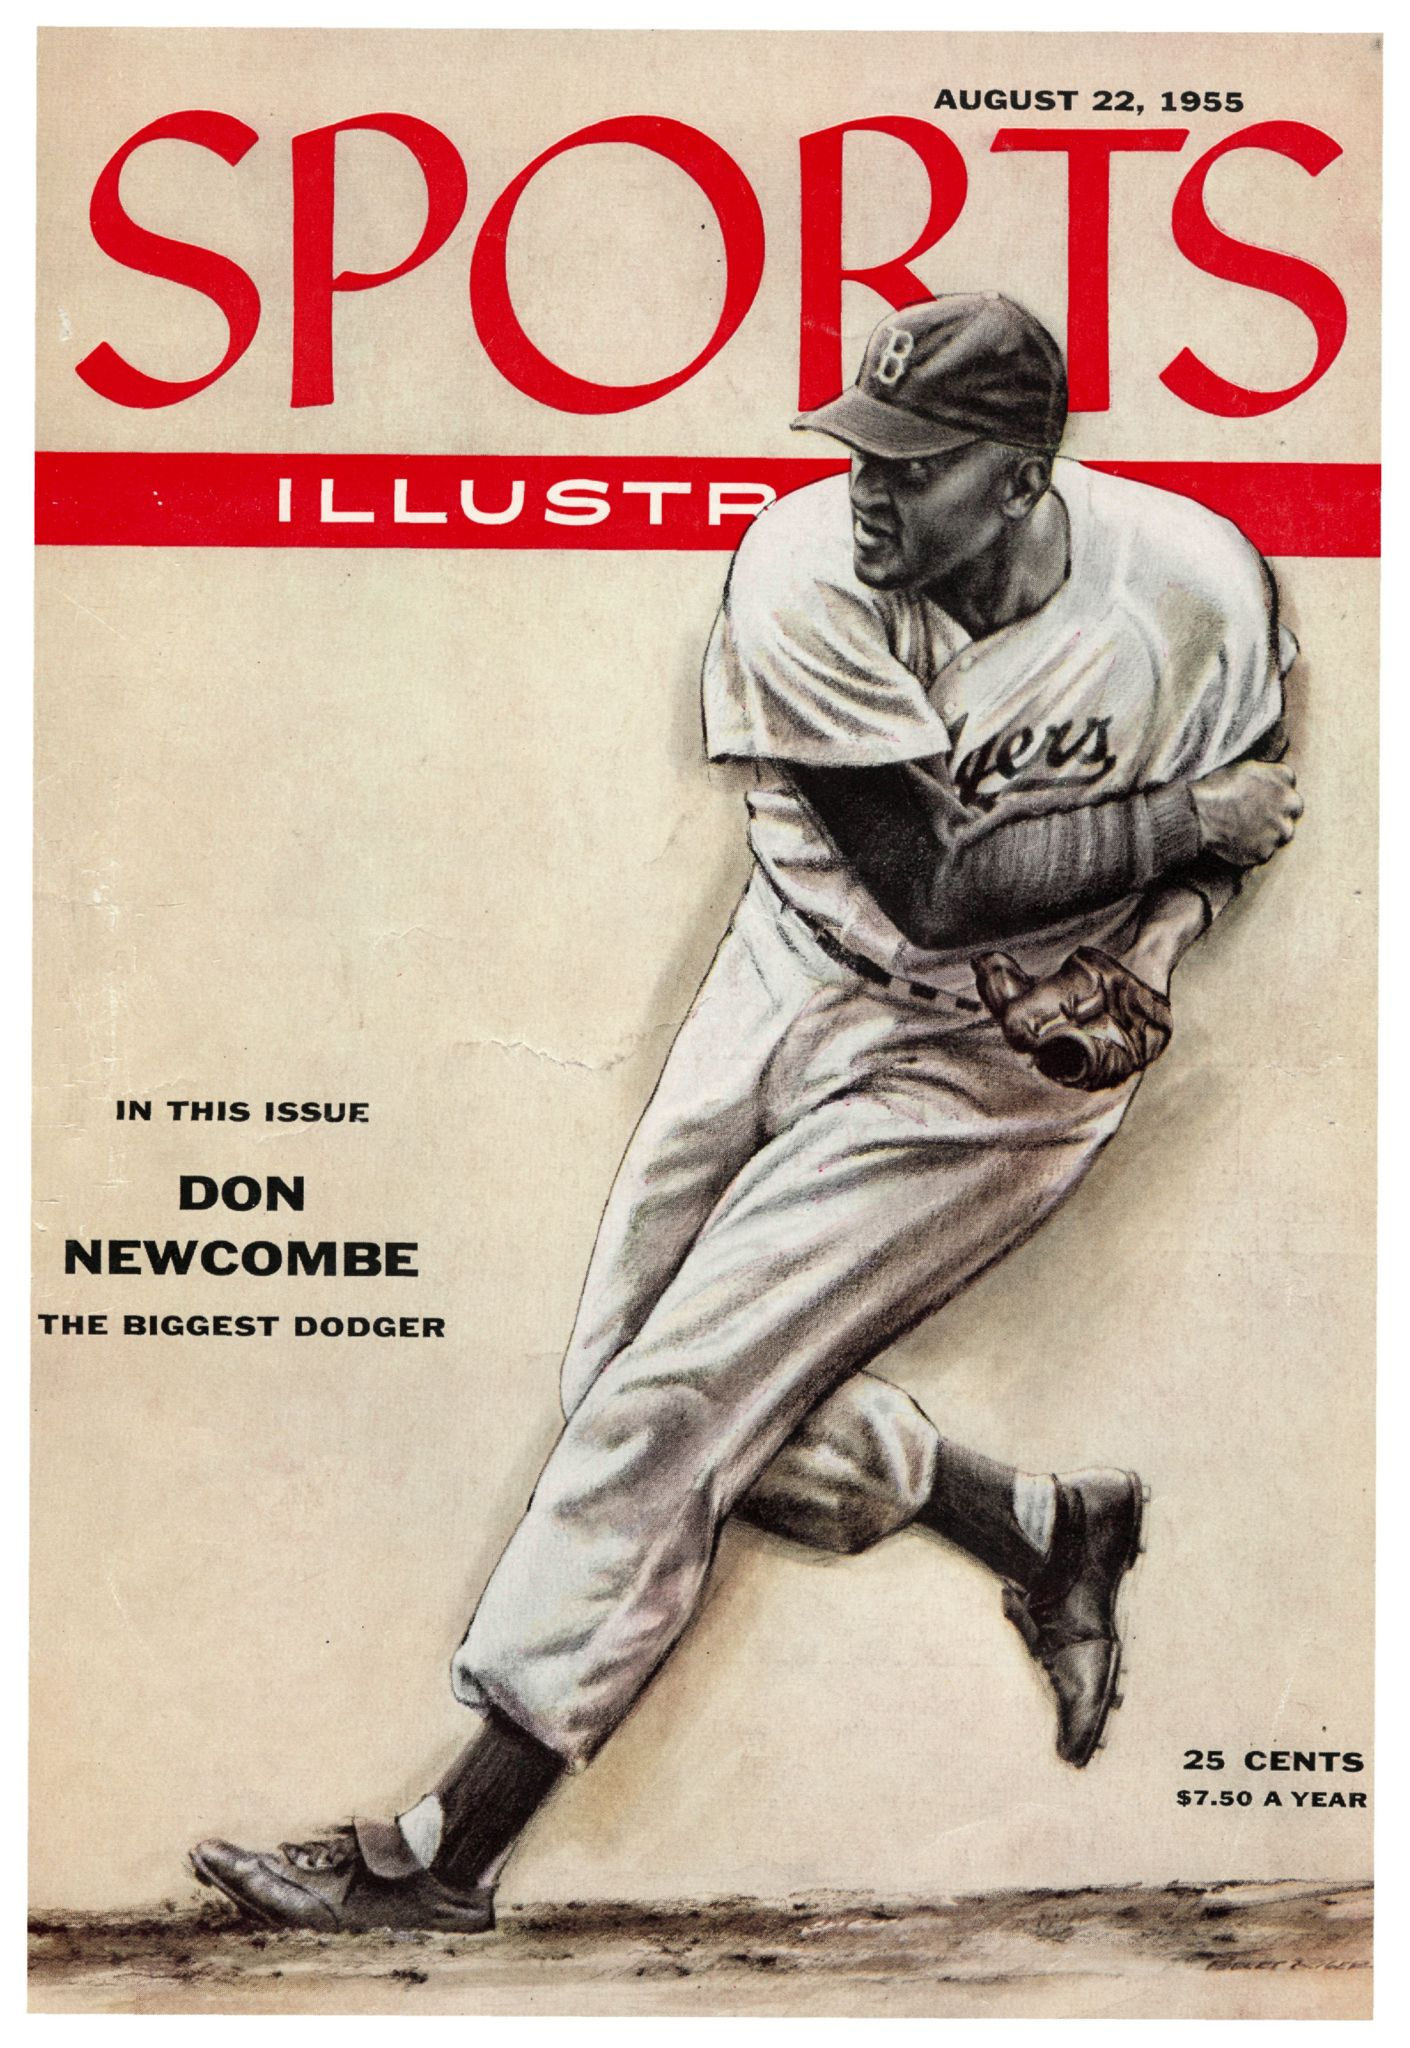 August 22 1955 issue viewer sports illustrated sports